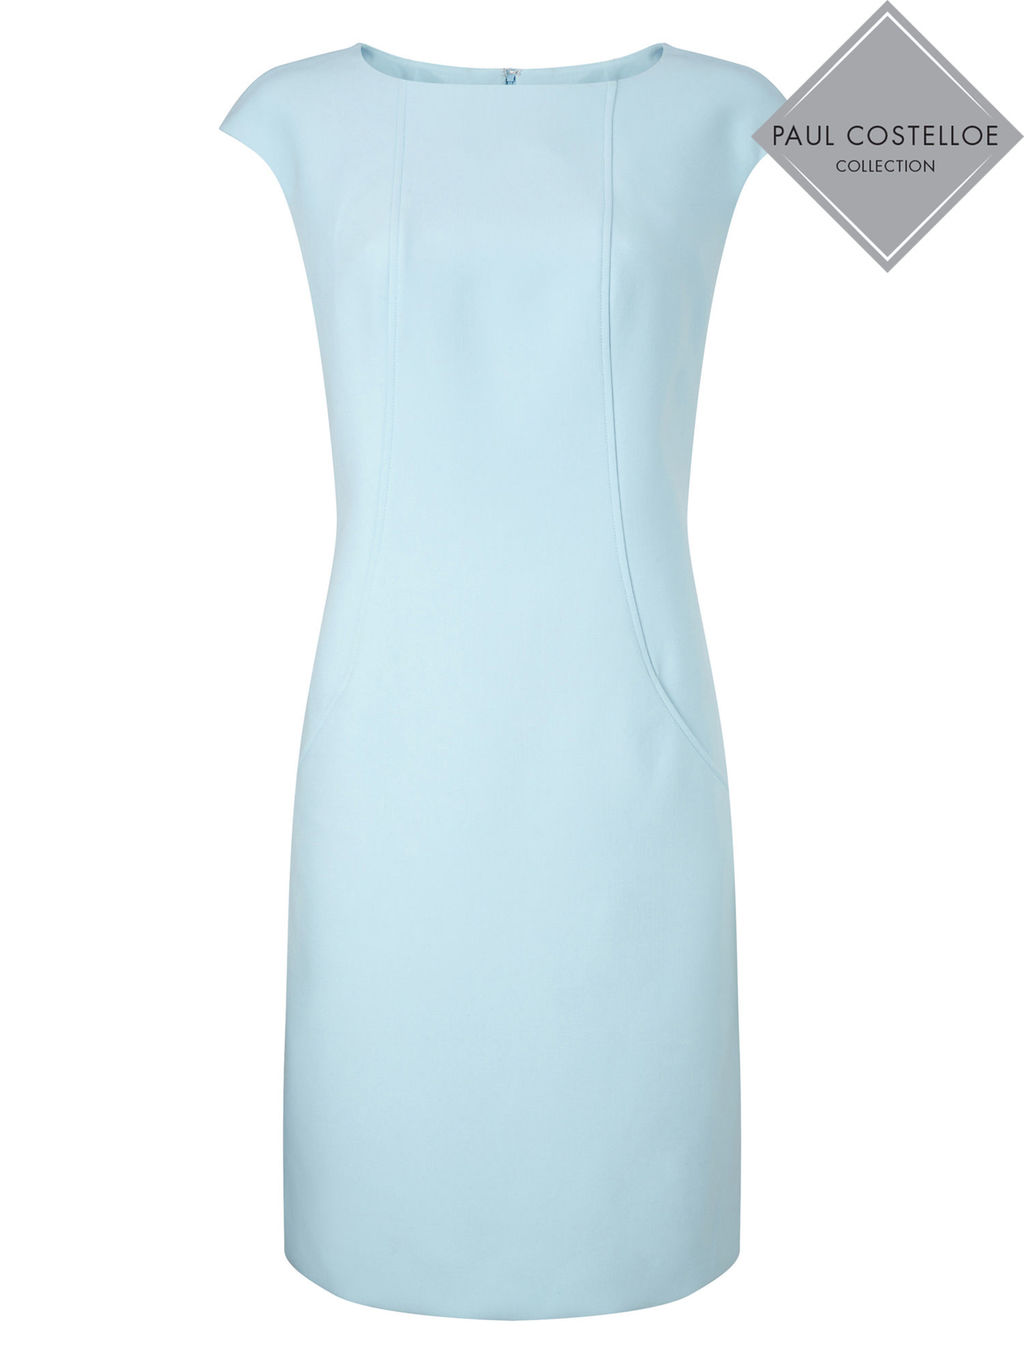 Paul Costelloe Kempton Dress - style: shift; sleeve style: capped; pattern: plain; predominant colour: pale blue; occasions: evening; length: on the knee; fit: body skimming; fibres: polyester/polyamide - stretch; neckline: crew; sleeve length: short sleeve; pattern type: fabric; texture group: jersey - stretchy/drapey; season: s/s 2016; wardrobe: event